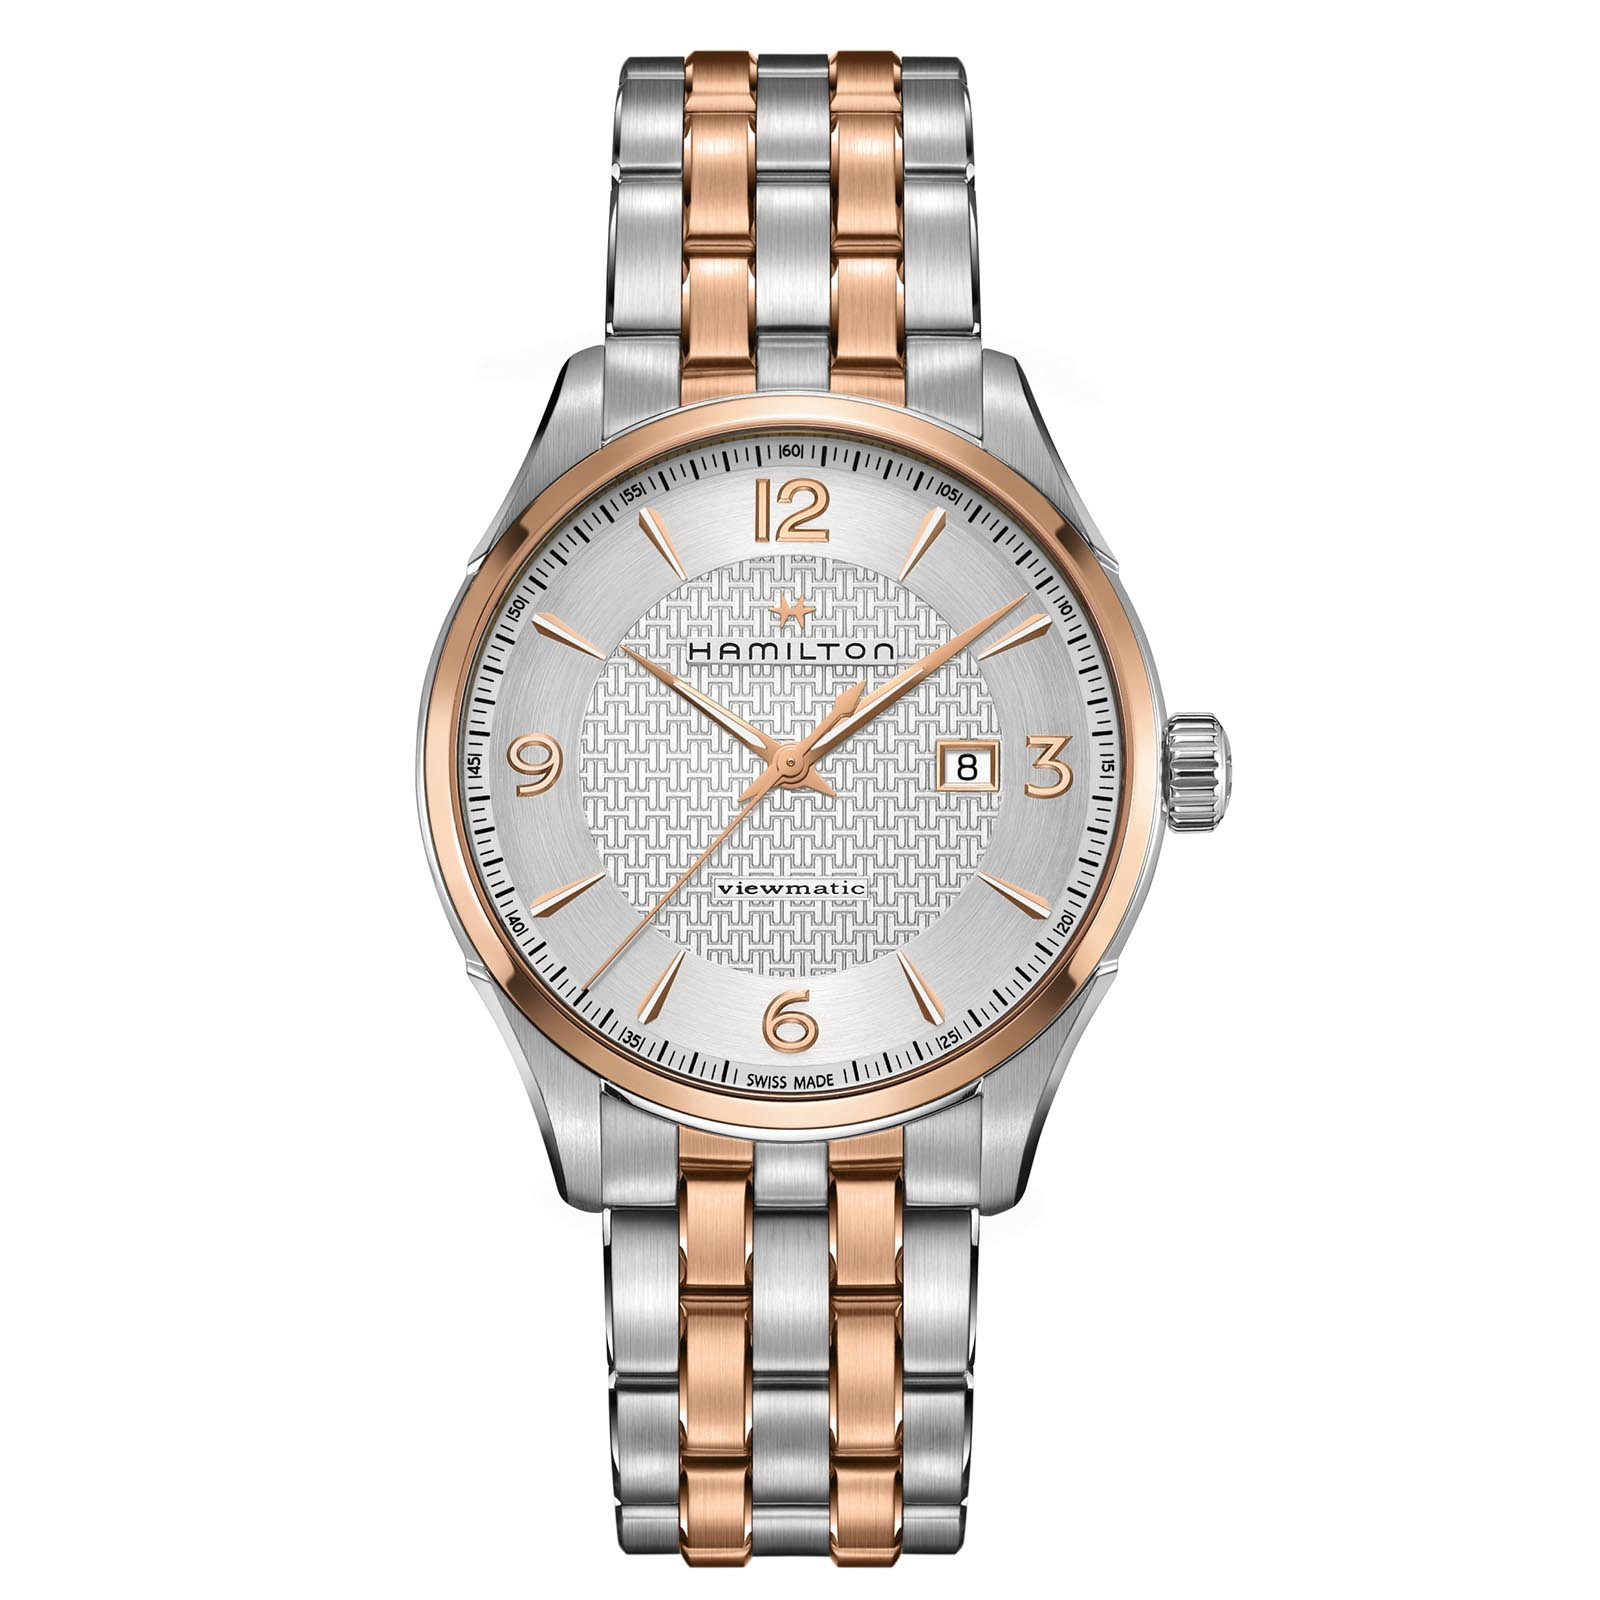 New Men's Hamilton Jazzmaster Viewmatic